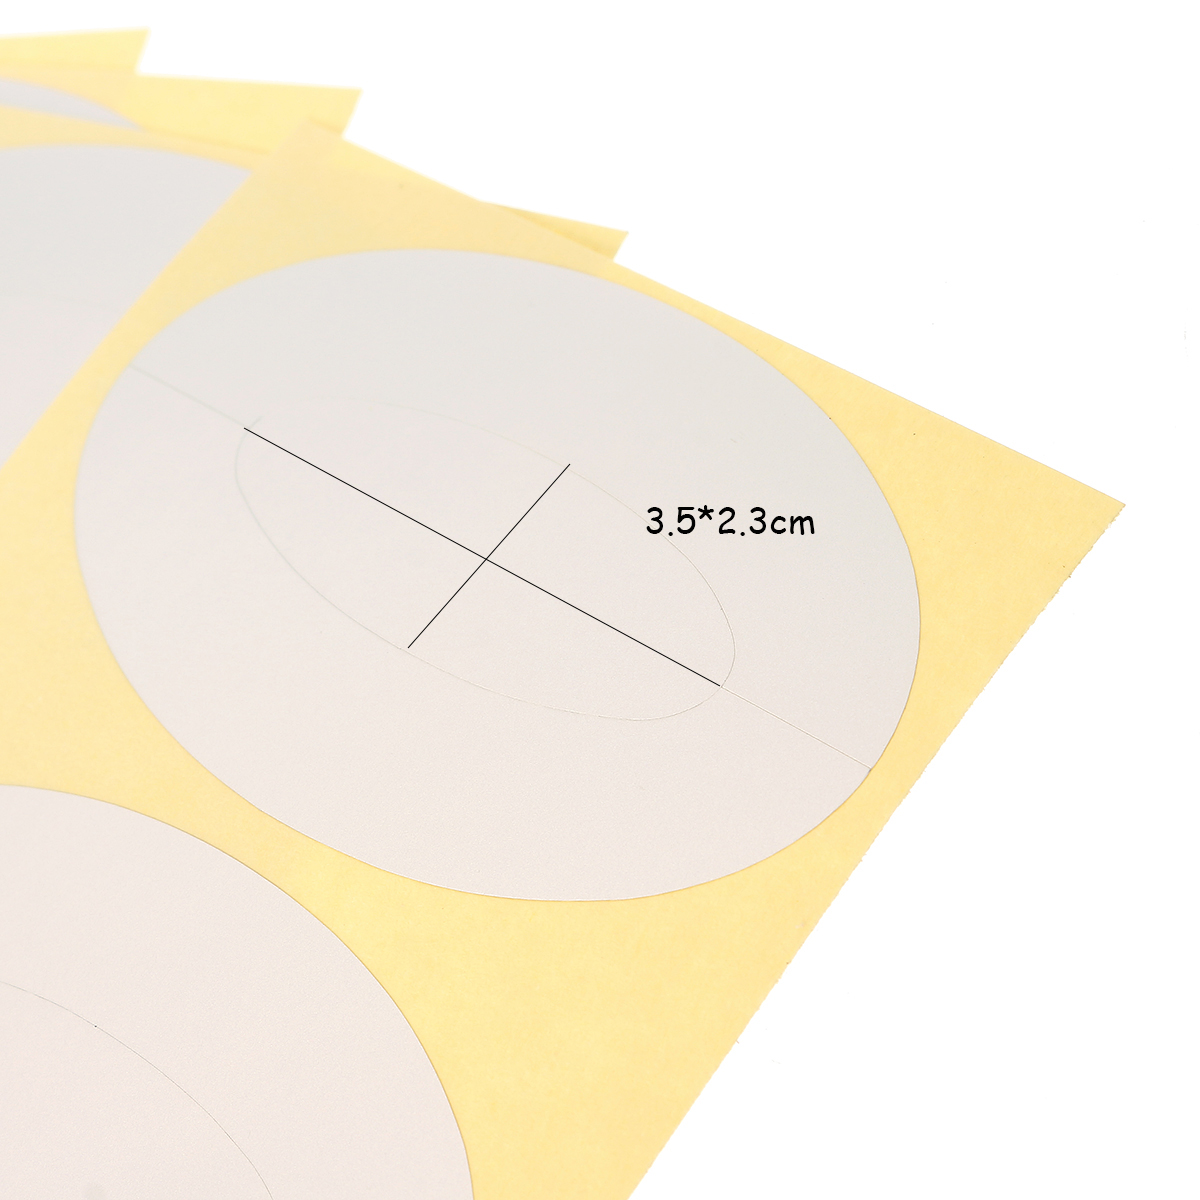 Paper Patches Eyelash Under Eye Pads Lash Grafted Eyelash Extension Paper Patches Eye Tips Sticker